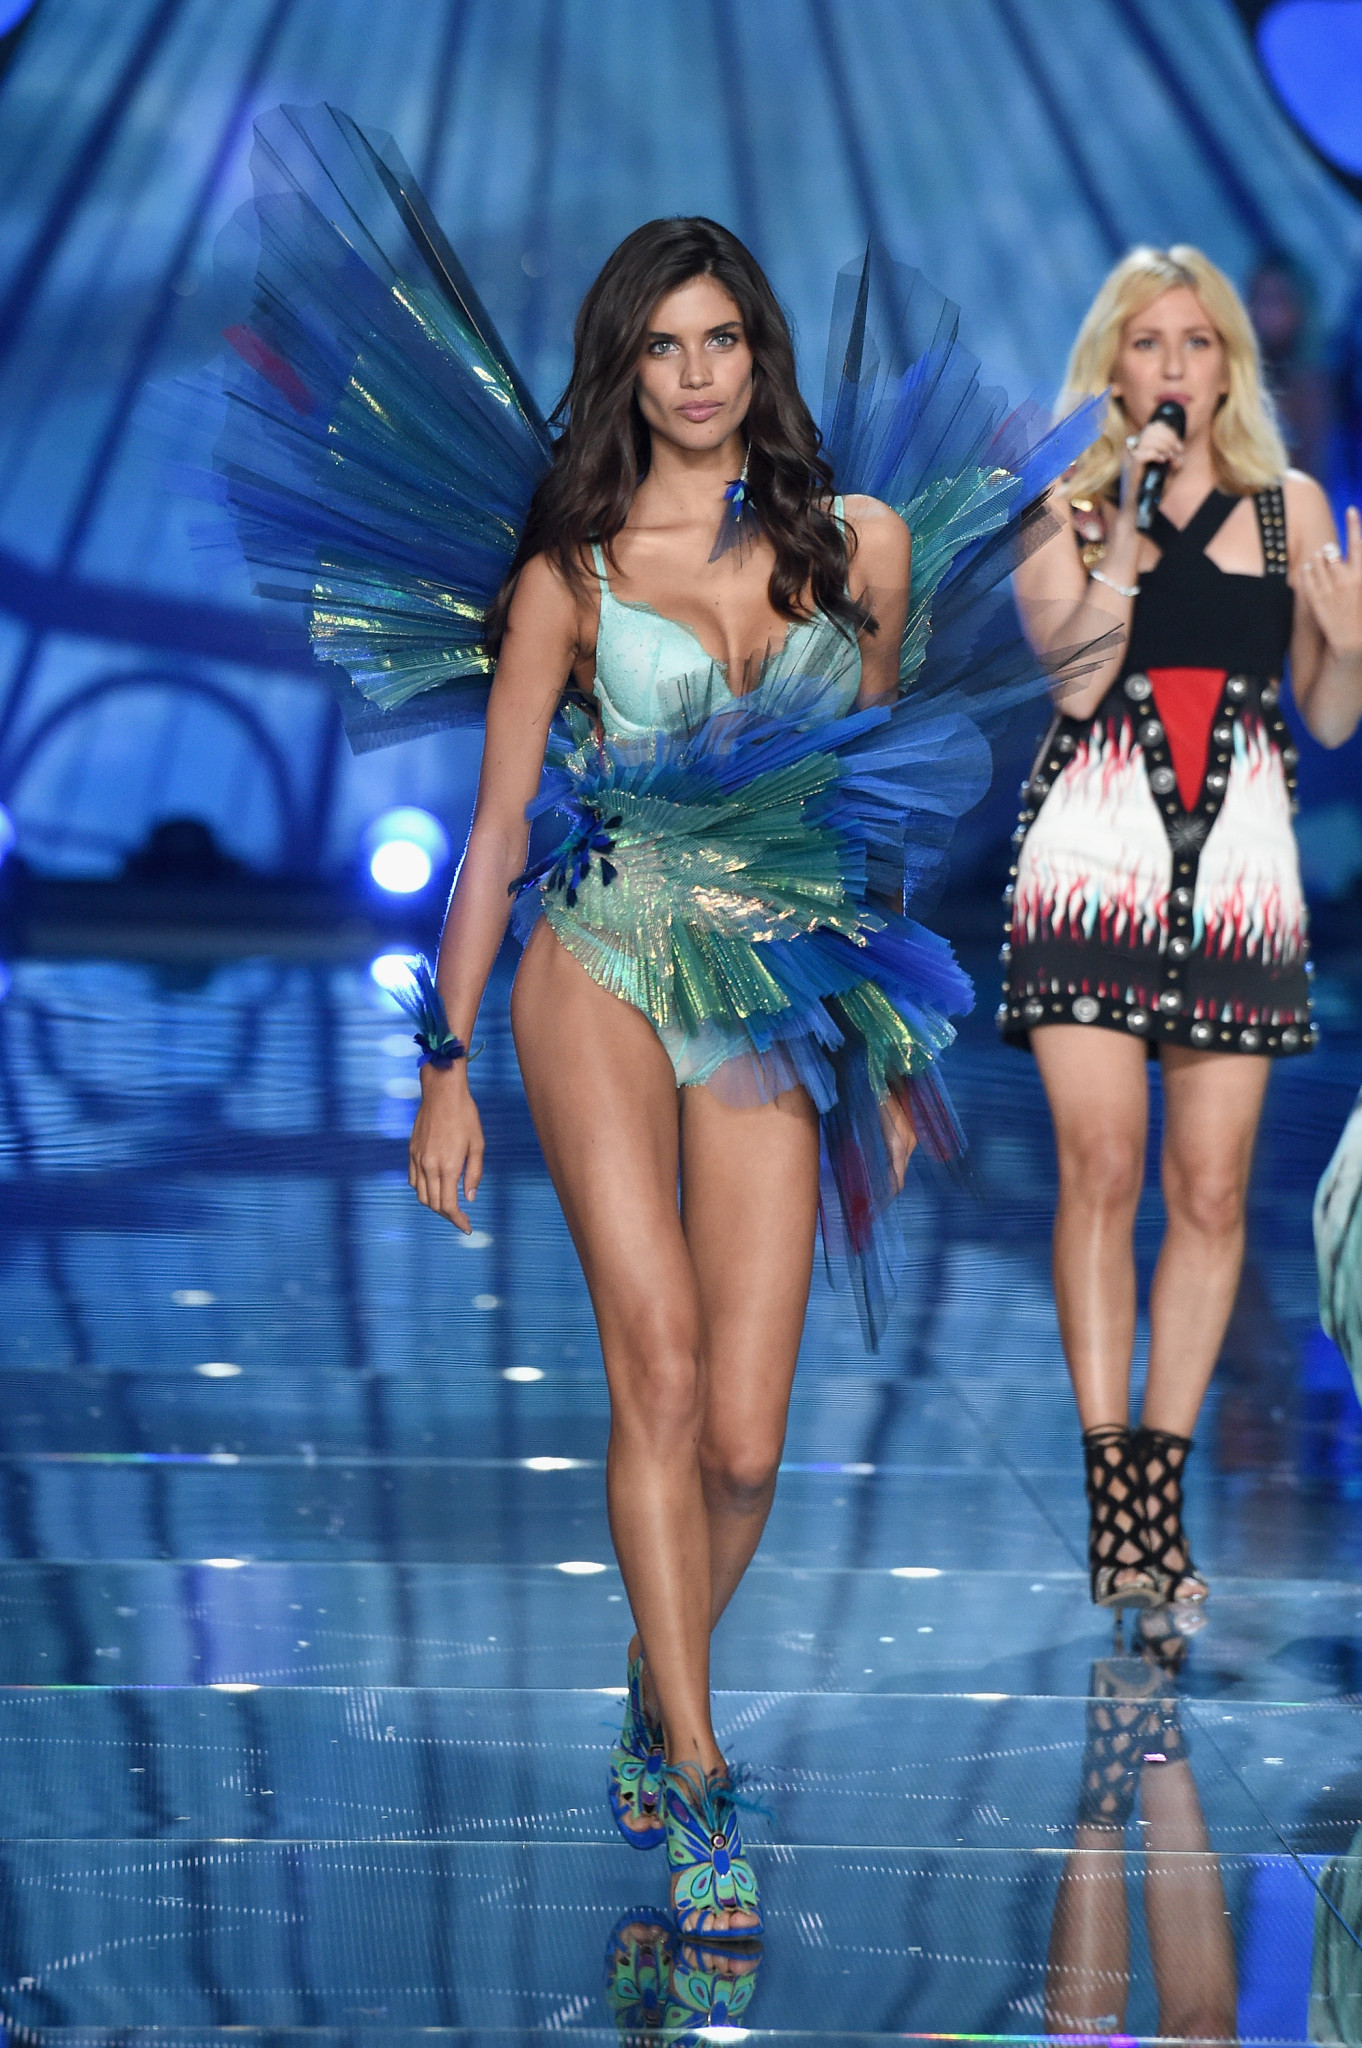 Sara Sampaio from Portugal walks the runway during the 2015 Victoria's Secret Fashion Show at Lexington Avenue Armory on November 10, 2015 in New York City.